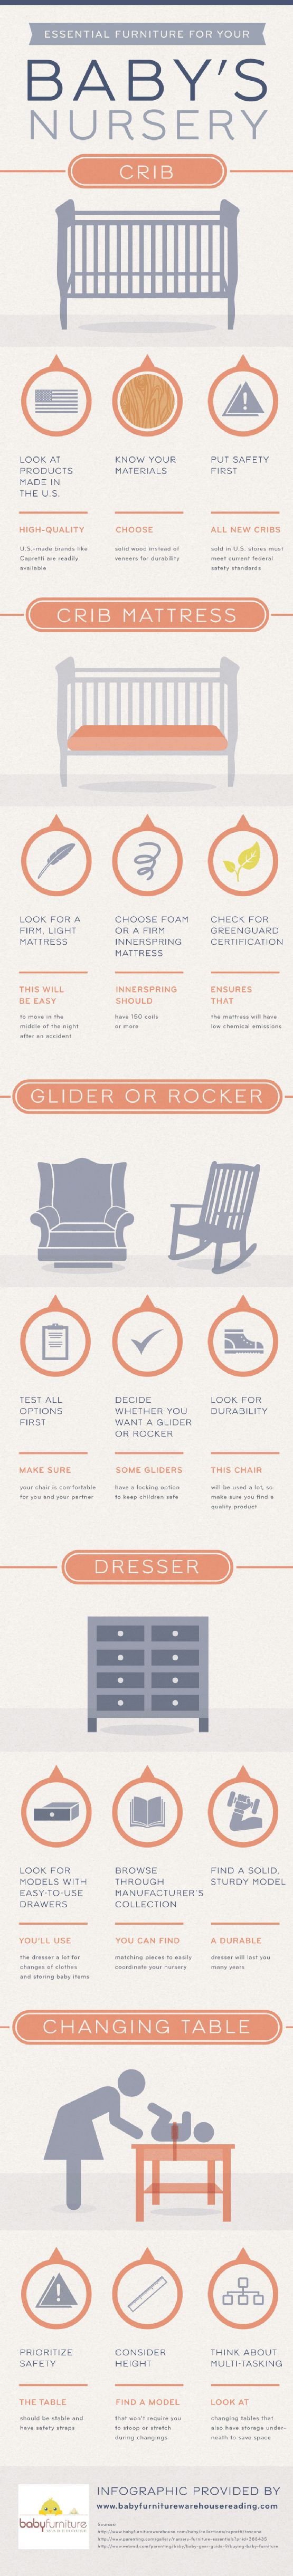 A glider is a must-have for any nursery. This piece of baby furniture offers mom a comfortable  place to sit while spending time with her baby. Discover how to choose the right glider by reading through this Massachusetts baby furniture store infographic.